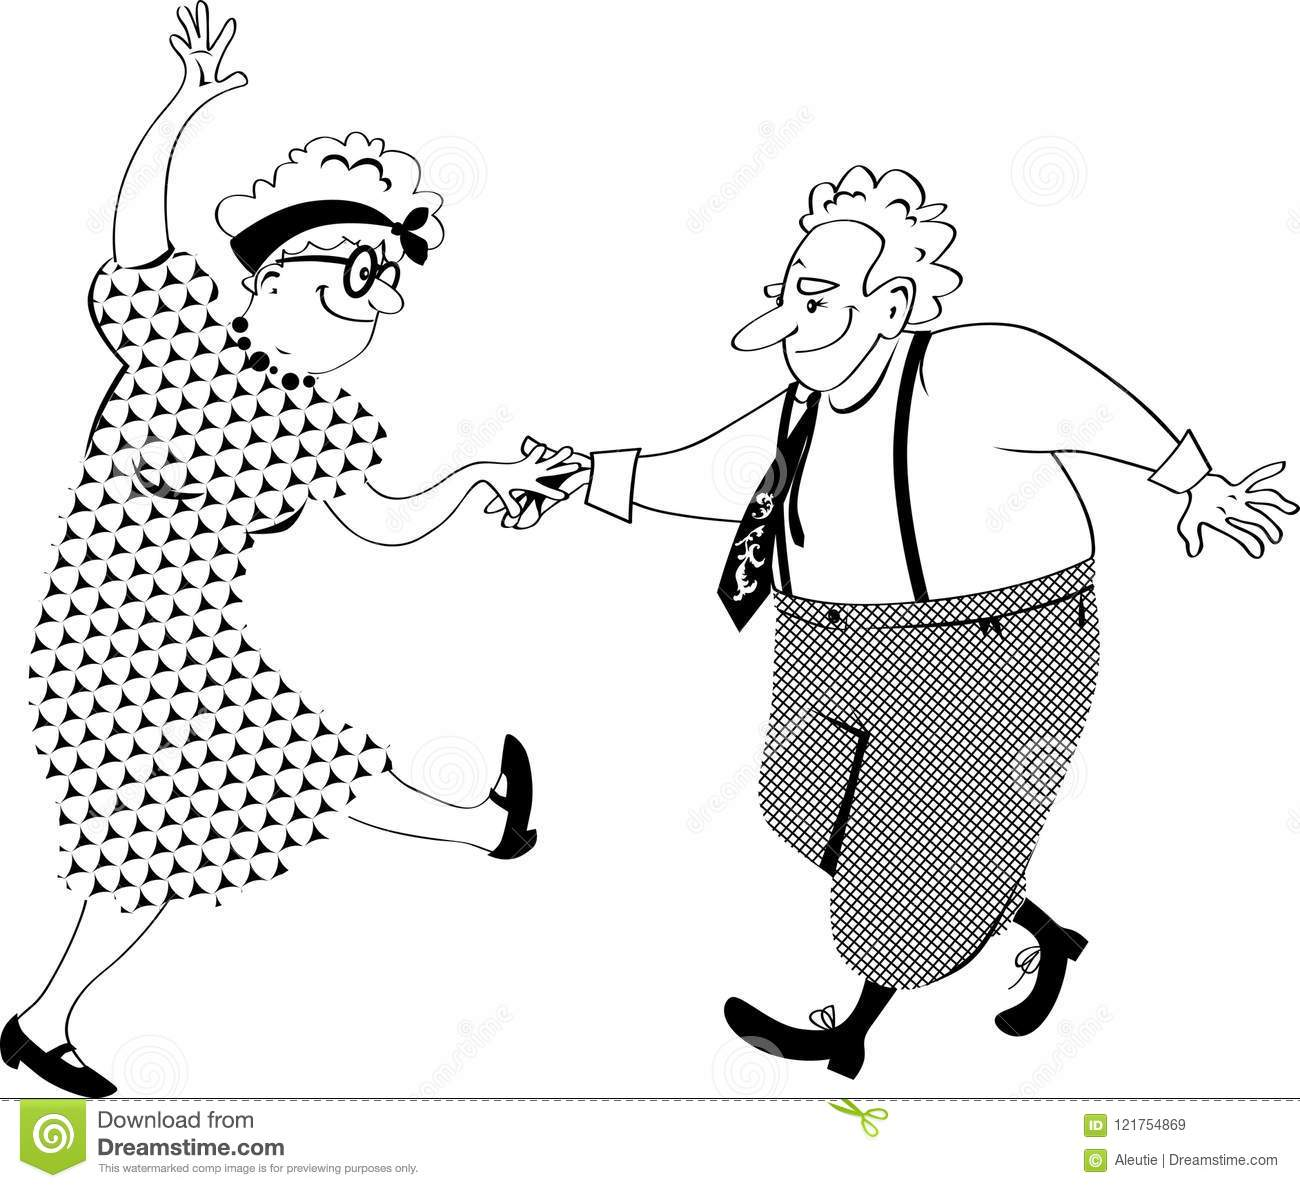 Image of: Whisper Cute Senior Citizens Couple Dancing Eps Vector Line Illustration No White Objects Dreamstimecom Dancing Old People Clipart Stock Vector Illustration Of